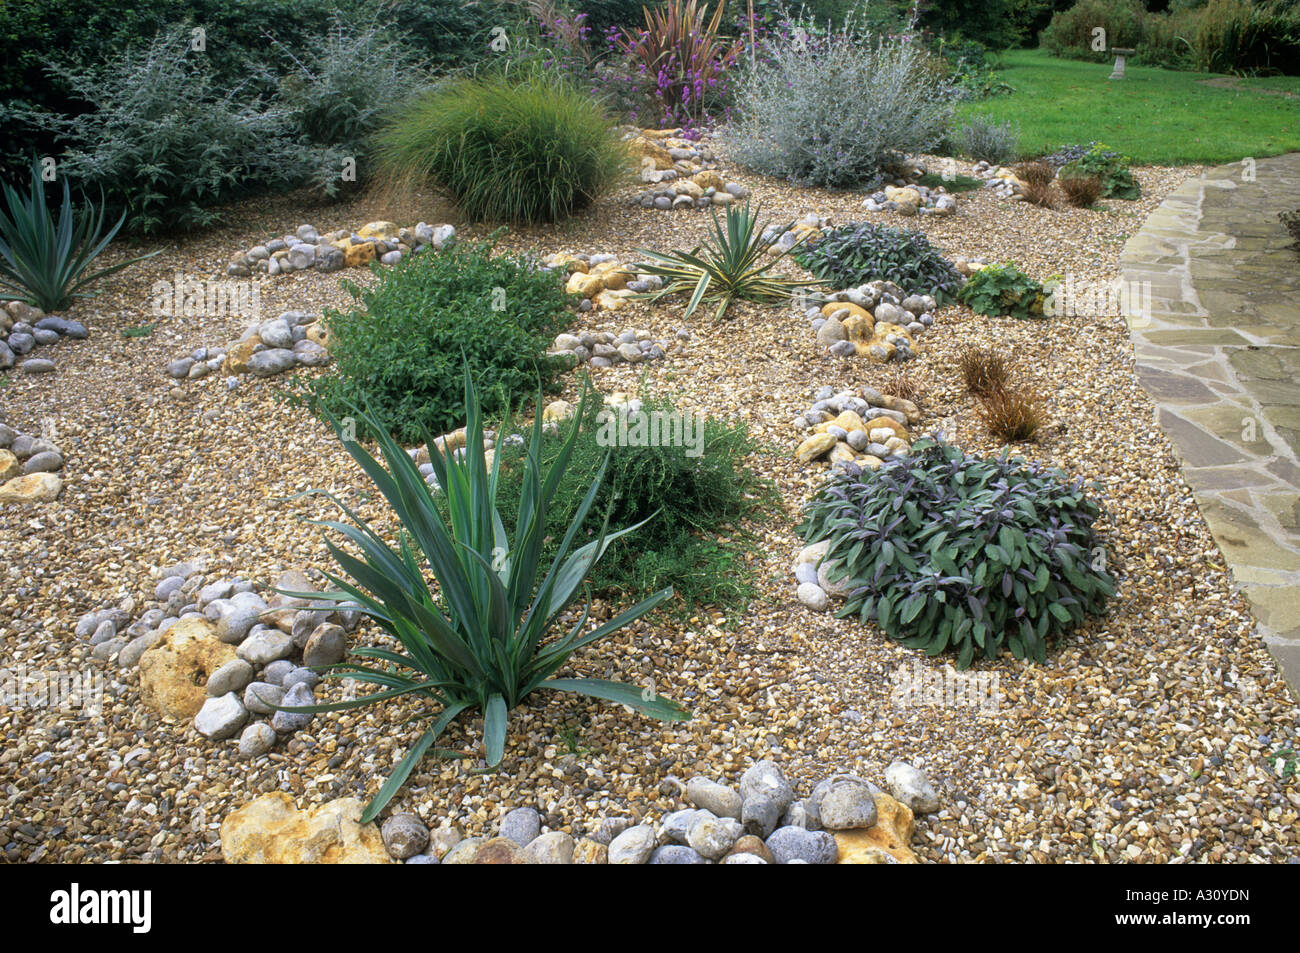 Gravel garden path lawn stones pebbles drought tolerant for Garden designs using pebbles